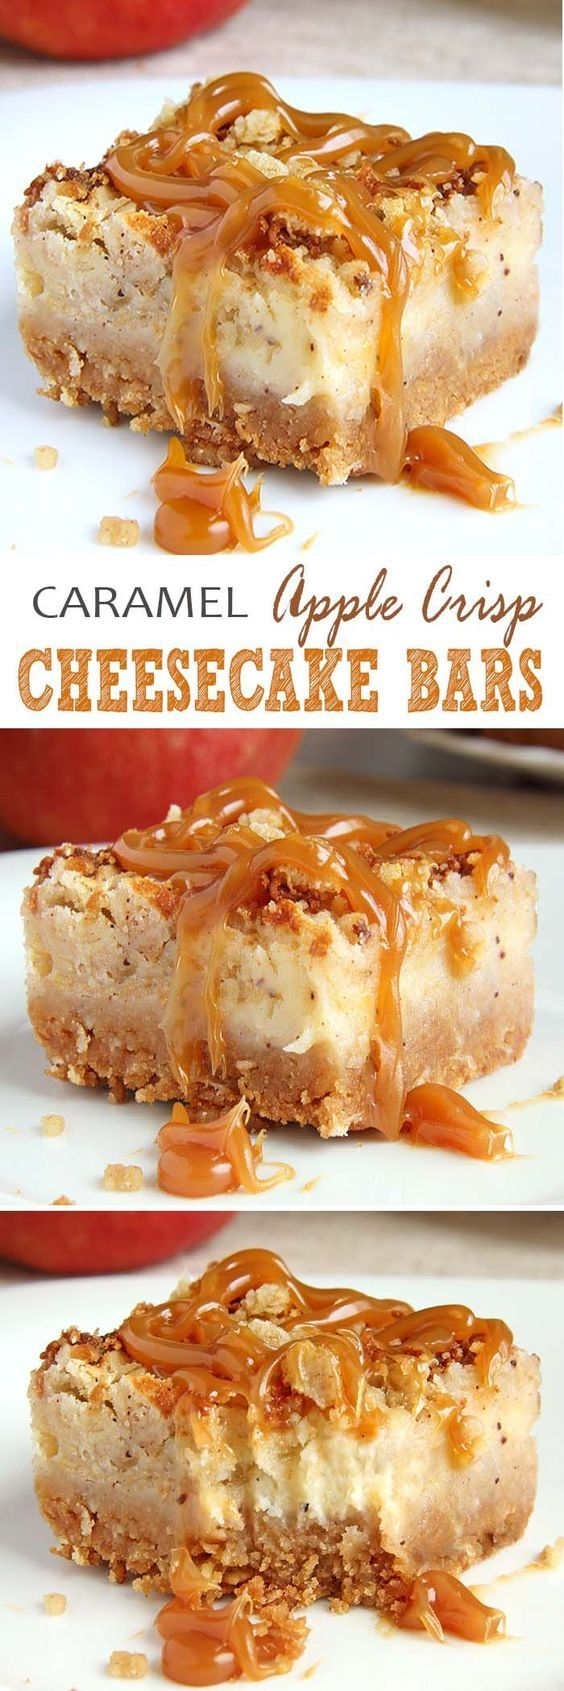 Caramel Apple Crisp Cheesecake Bars Dessert Recipe via Sugar Apron - These Caramel Apple Crisp Cheesecake Bars are ideal choice in the autumn season, but also during holidays, which are knocking on the door.